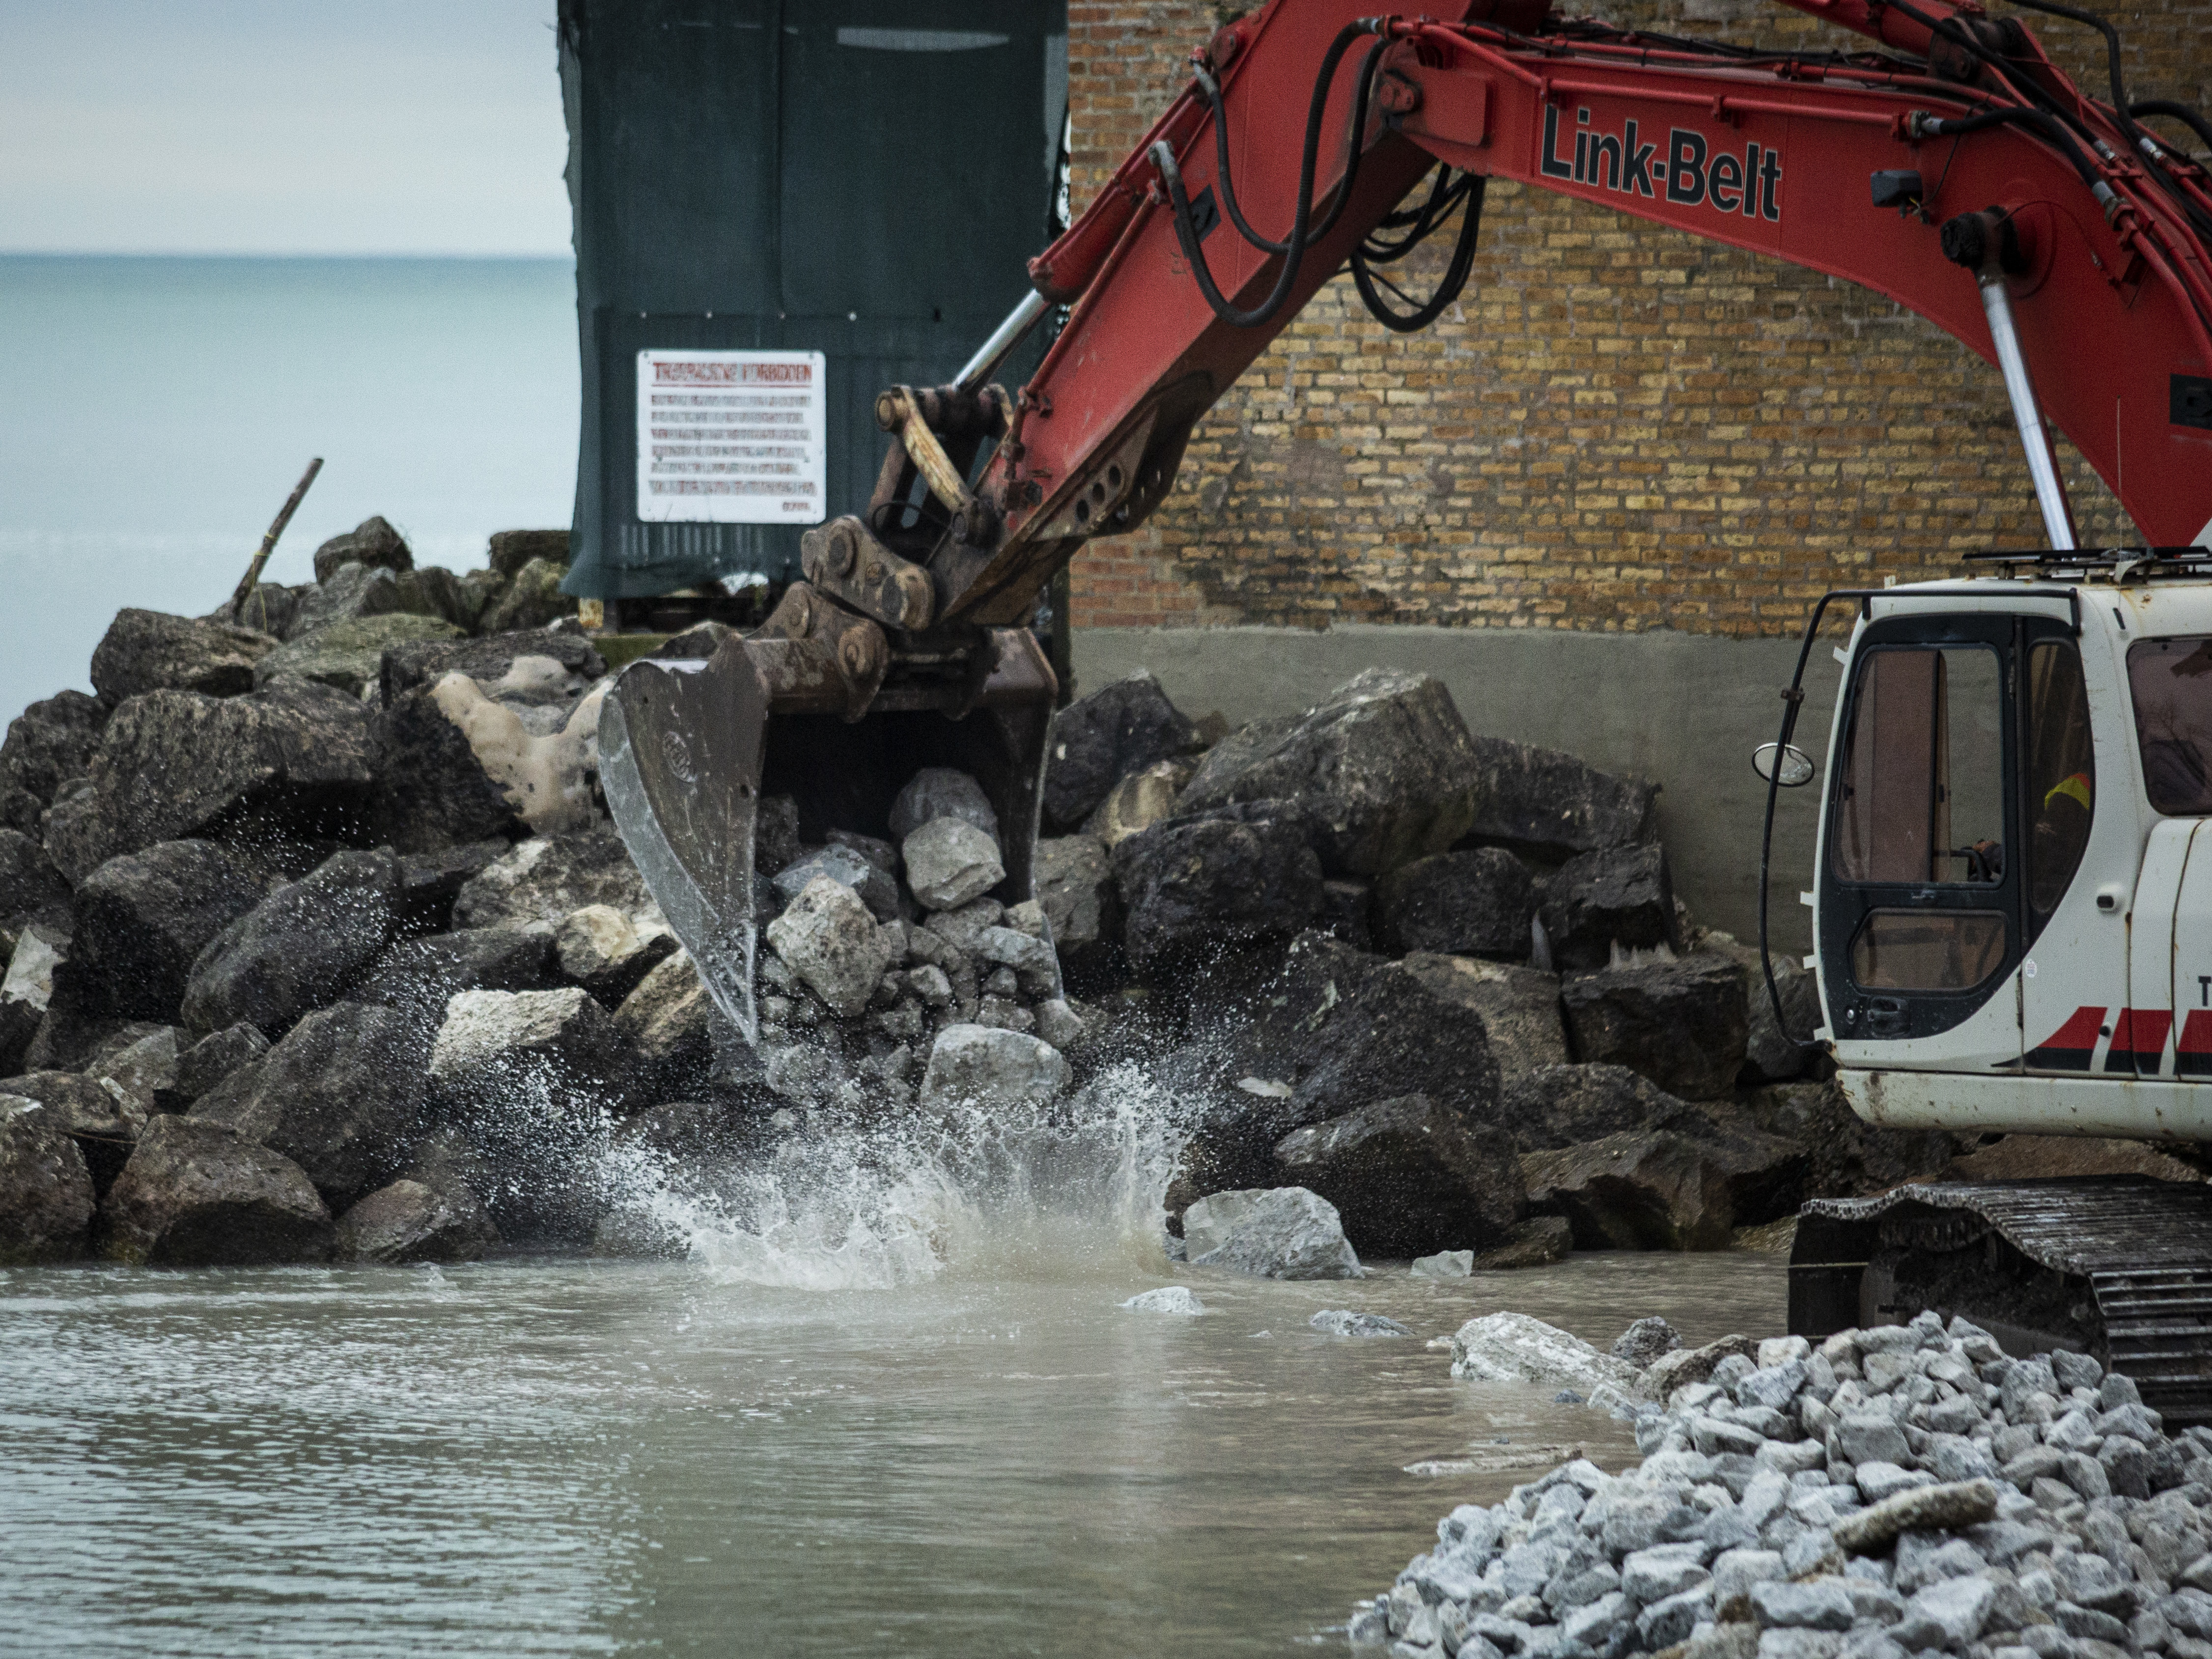 City workers unload boulders in an effort to slow erosion and protect the shoreline at Juneway Beach at the northeast tip of the Rogers Park neighborhood, Thursday afternoon, Nov. 21, 2019.